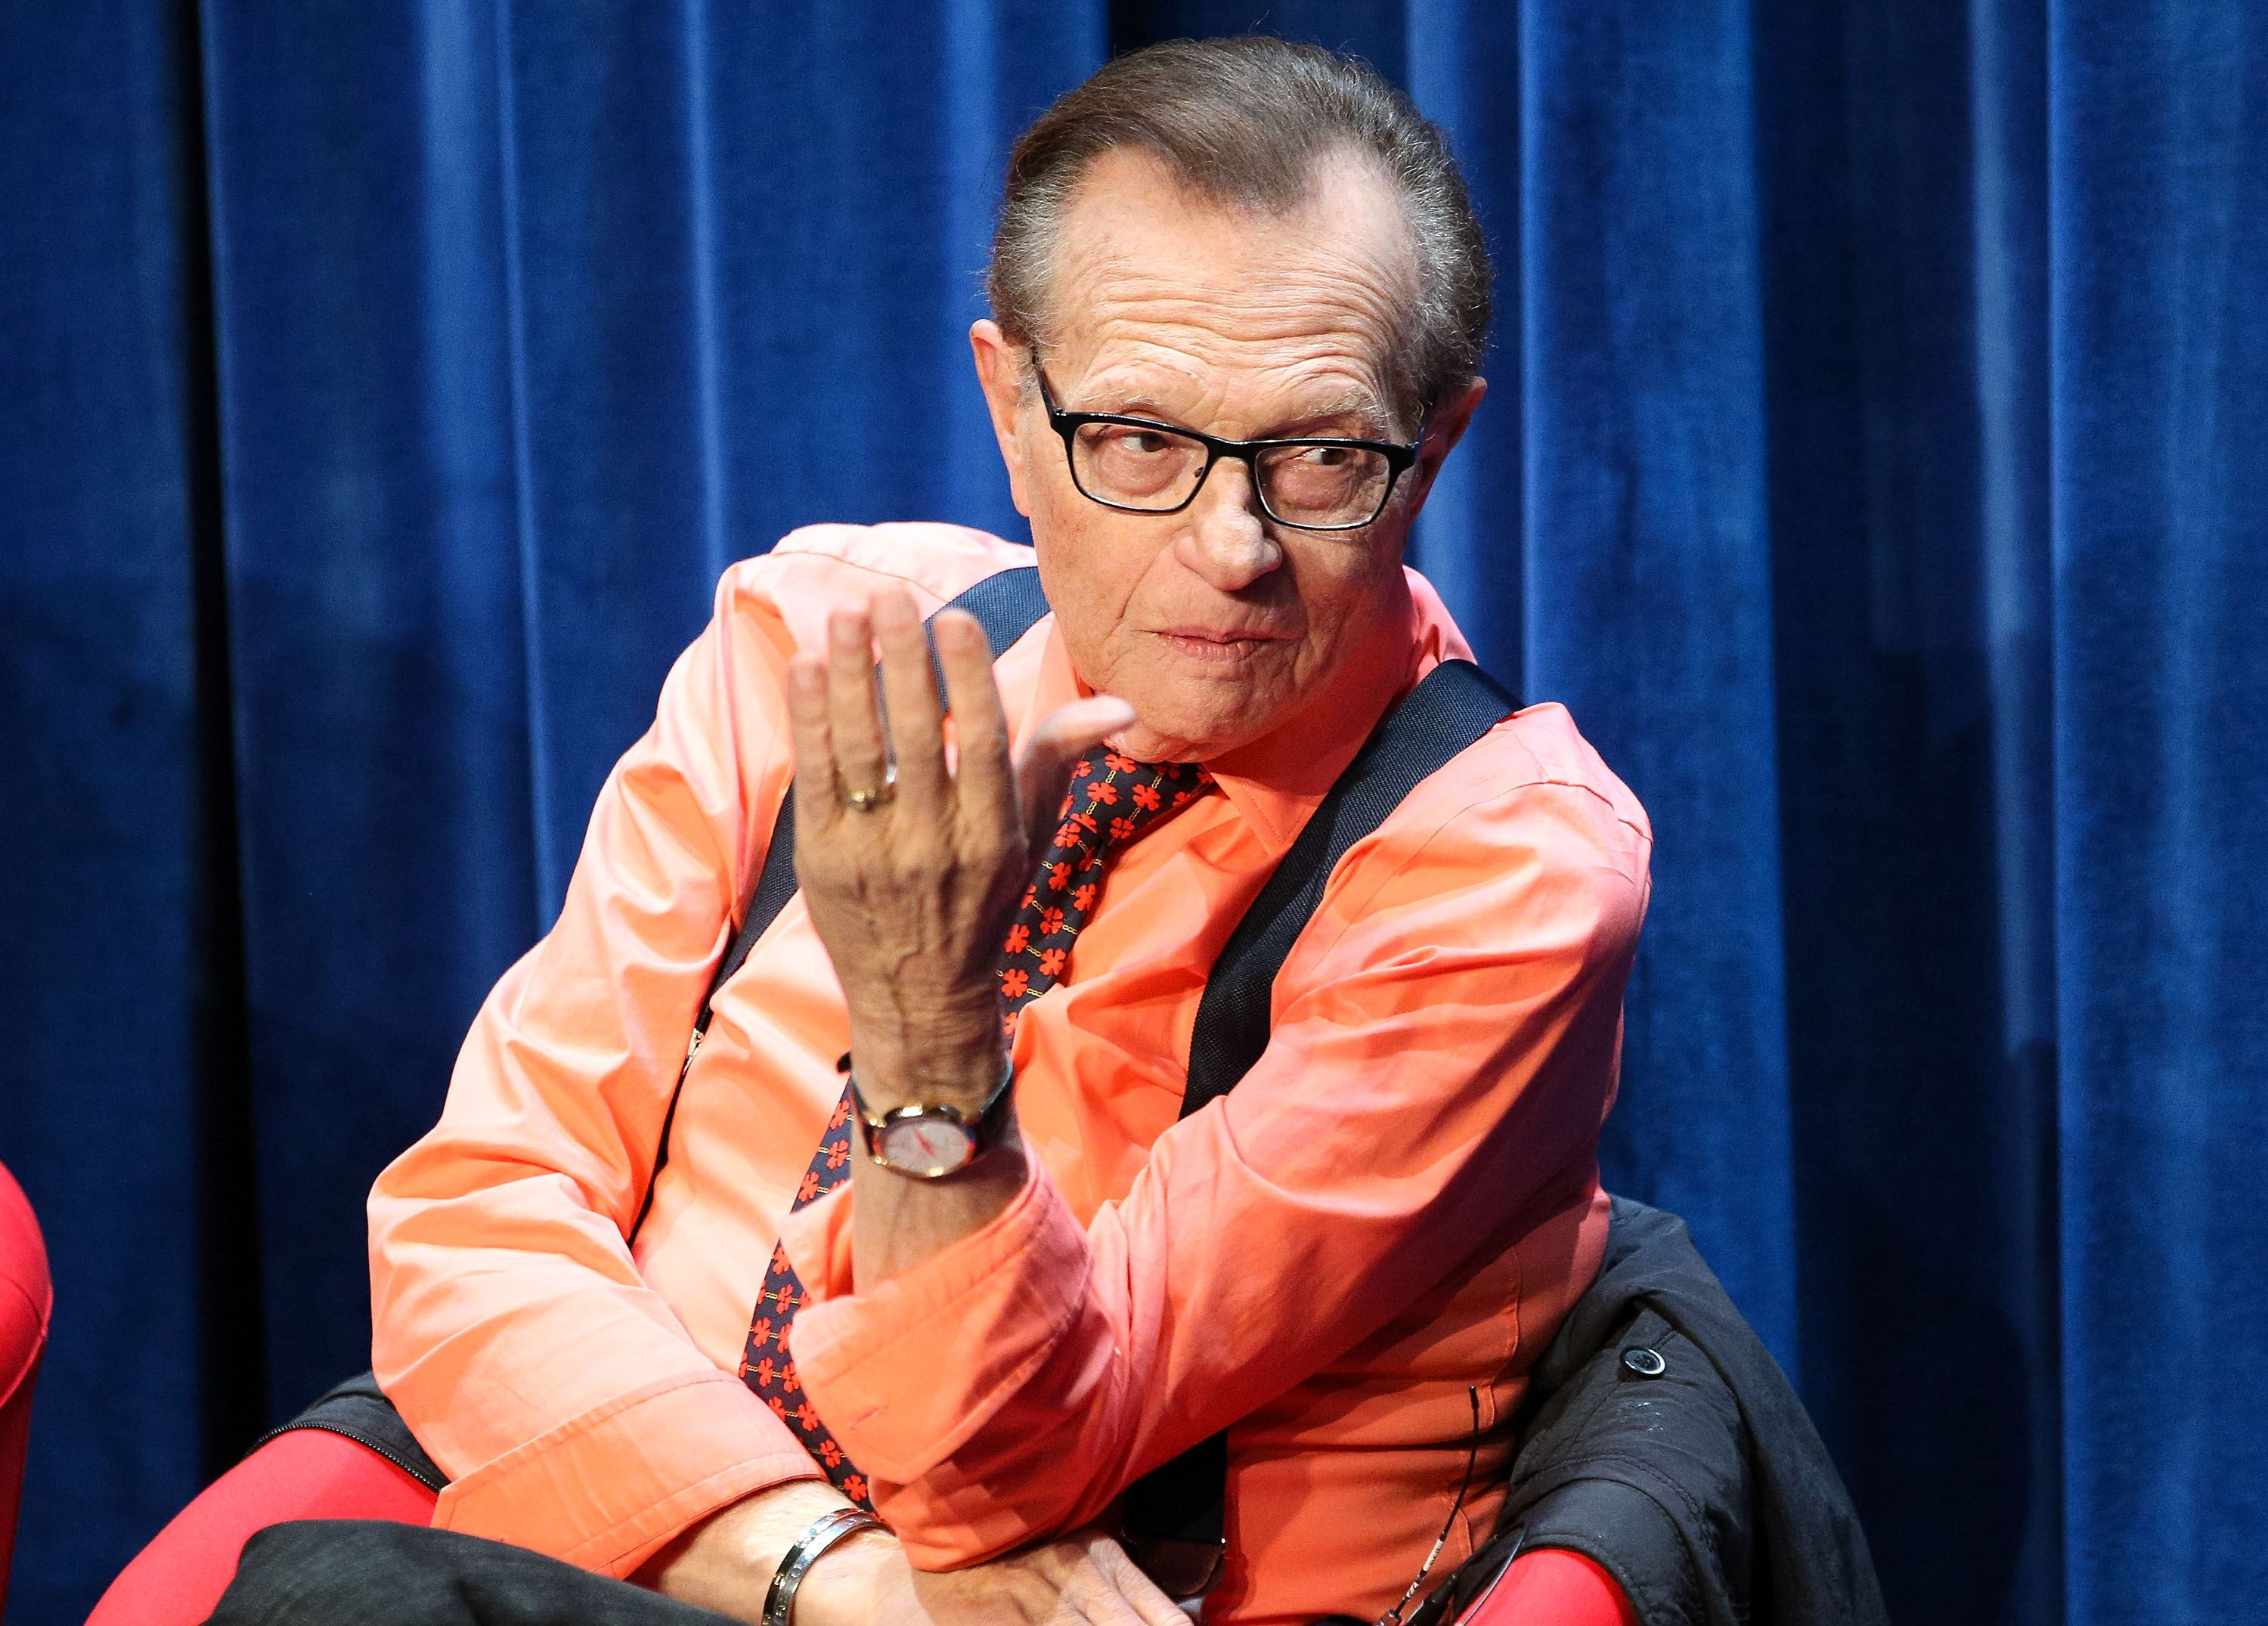 Larry king young pictures, furry lesbian porn